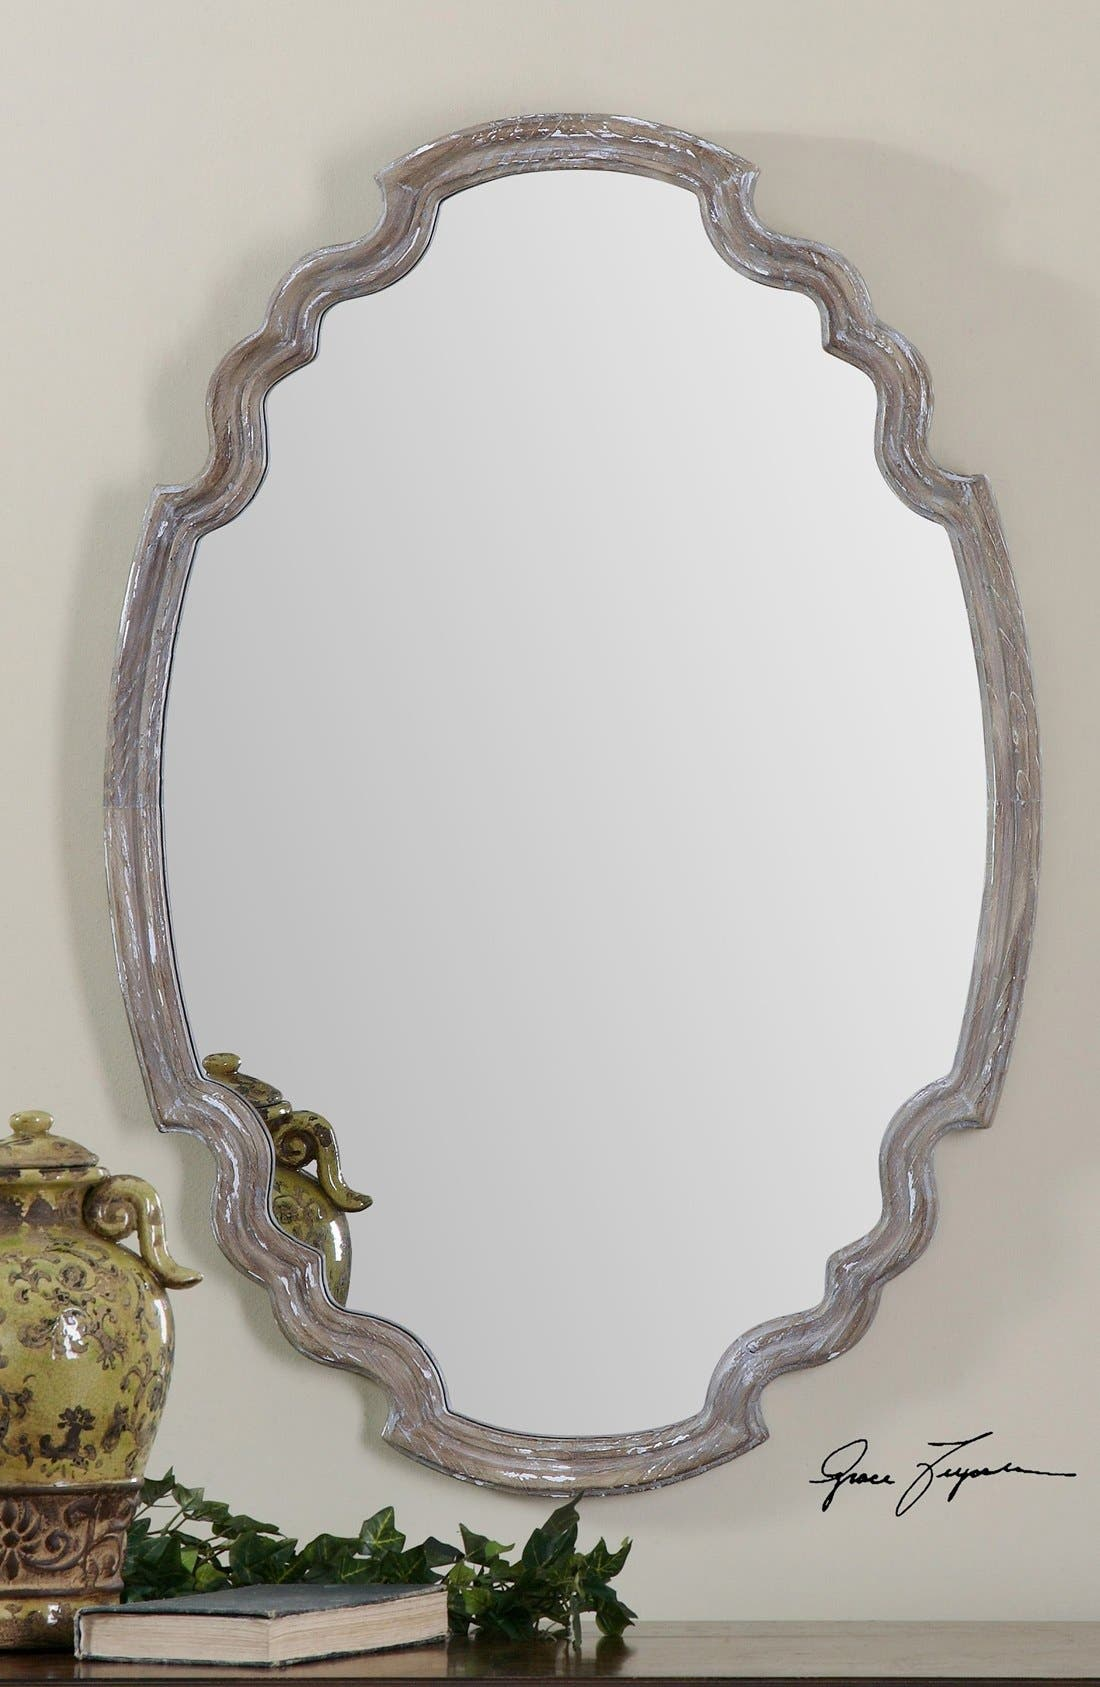 'Ludovica' Aged Finish Oval Wall Mirror,                             Alternate thumbnail 3, color,                             020